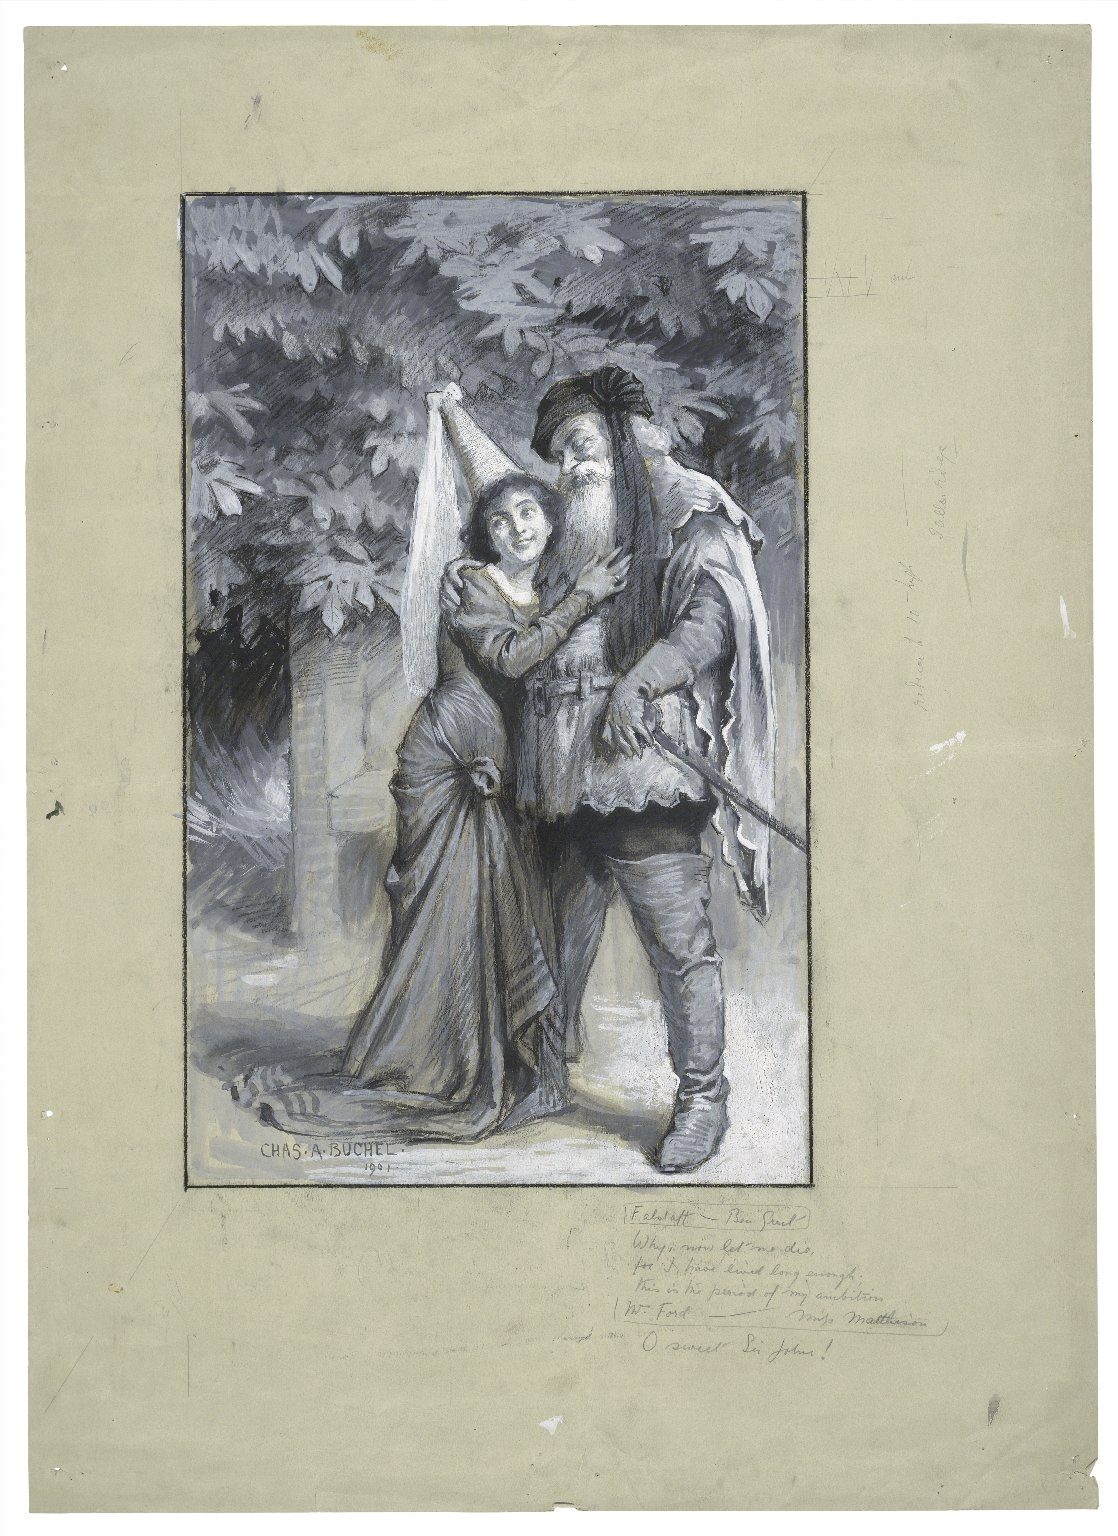 [The merry wives of Windsor at Regent's Park, Mr. Greet as Falstaff and Miss Matthison as Mistress Ford] [graphic] / Chas. A. Buchel.